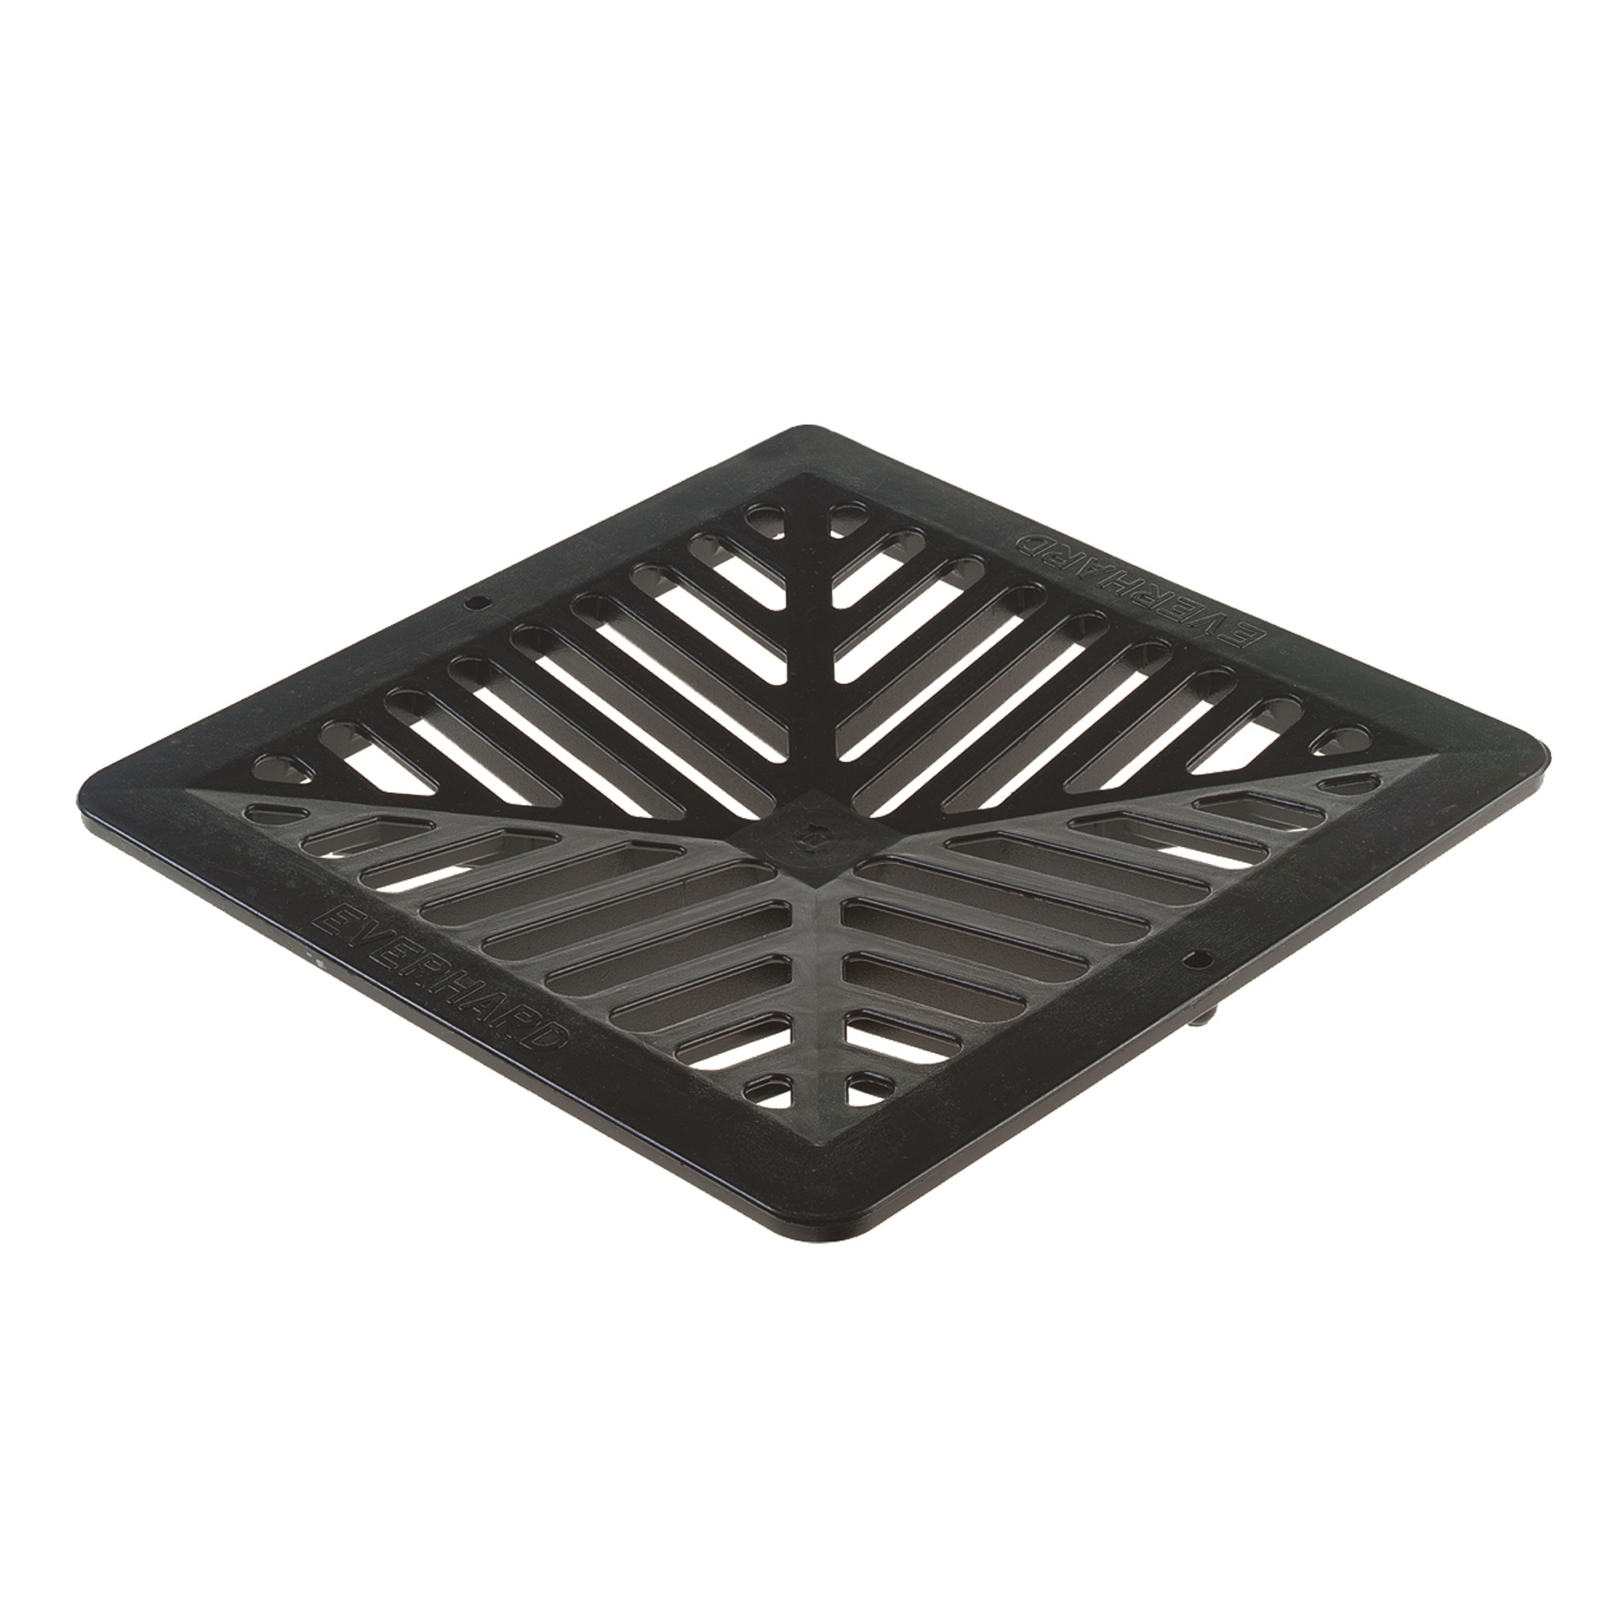 Everhard EasyDRAIN Polymer Grate to Suit Flo-Way Pit